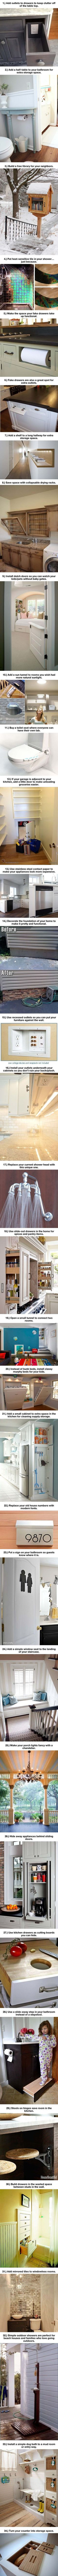 34 Relatively Simple Things That Will Make Your Home Extremely Awesome... Kinda cool. That door to the garage into pantry!!!